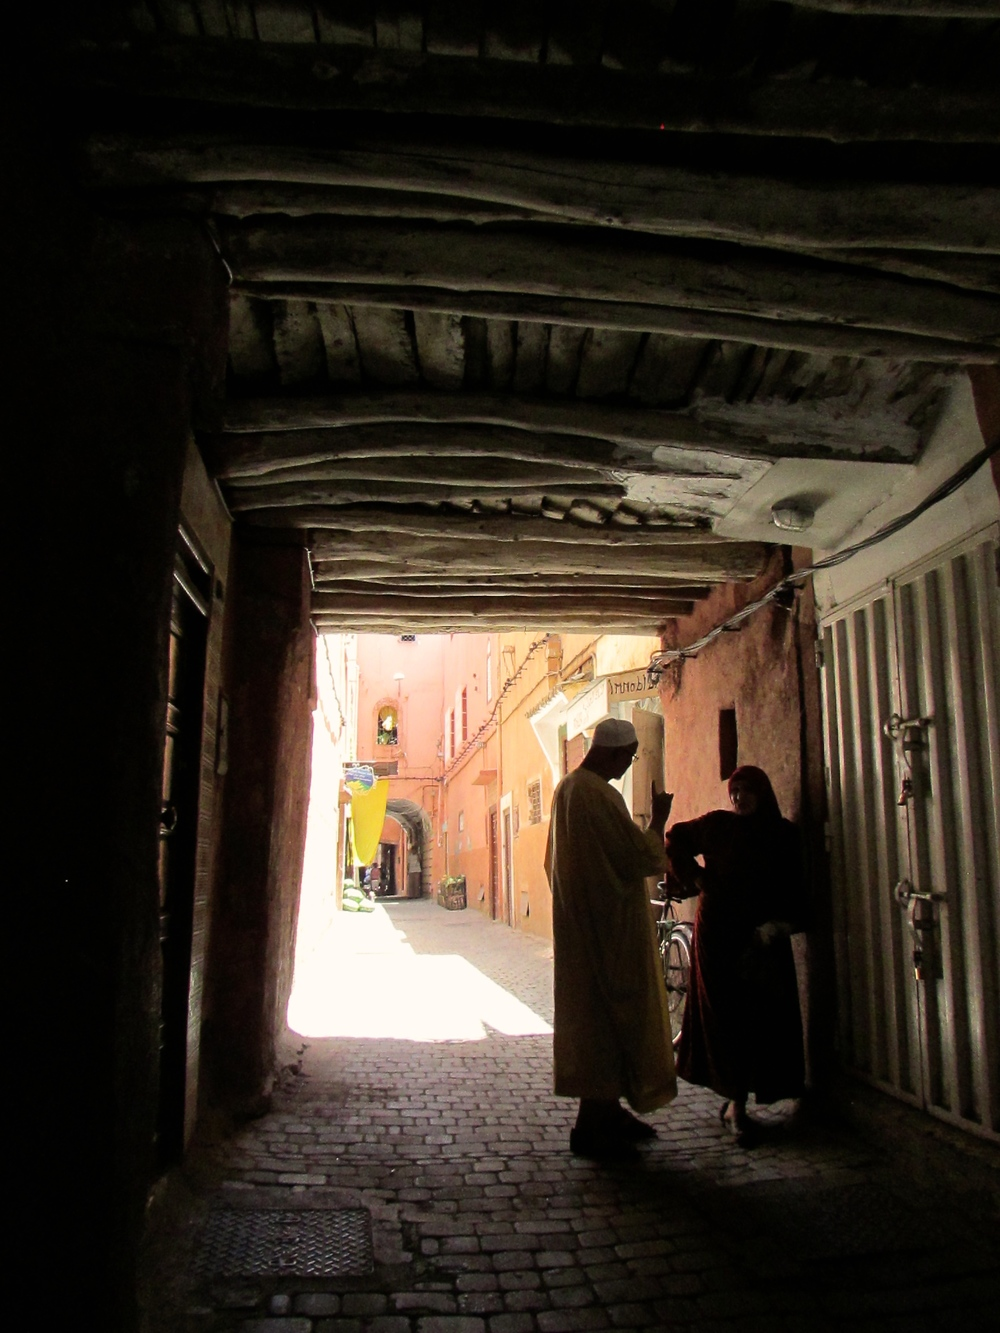 A street in the medina in Marrakesh, Morocco